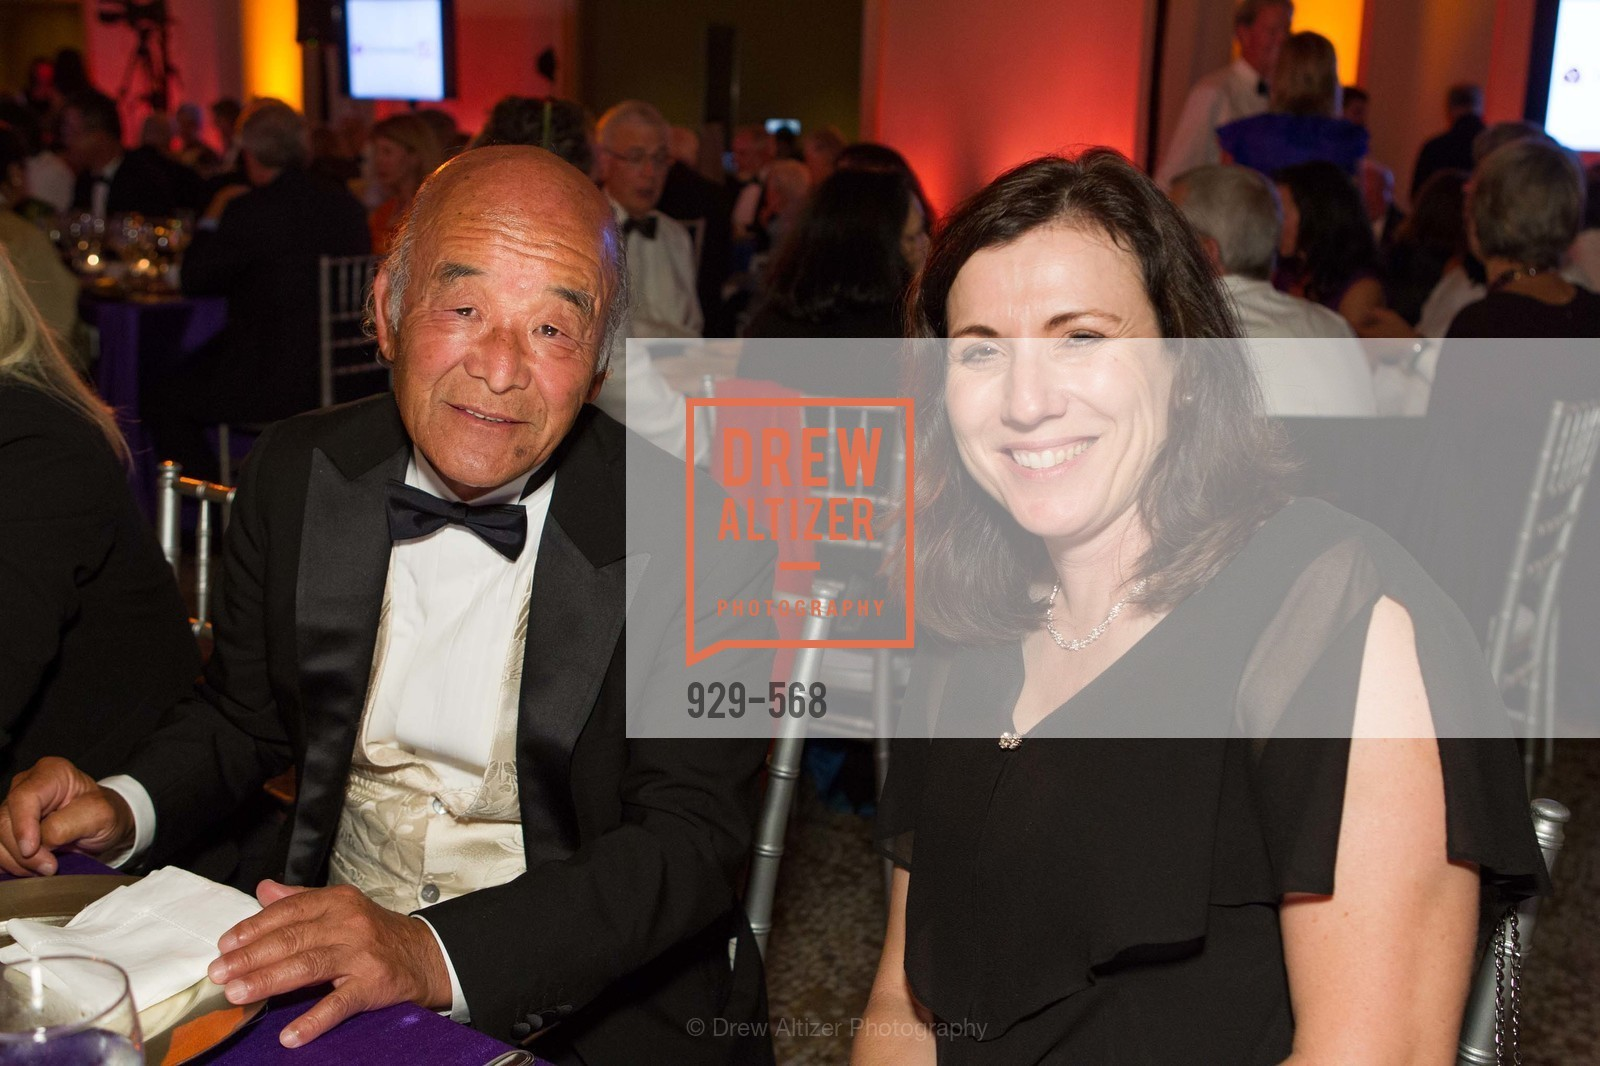 Hiro Ogawa, Alexandra Pastor, SOTHEBY'S  Hosts a Private Viewing of Highlights from the Collection of MRS. PAUL MELLON, US, September 17th, 2014,Drew Altizer, Drew Altizer Photography, full-service agency, private events, San Francisco photographer, photographer california